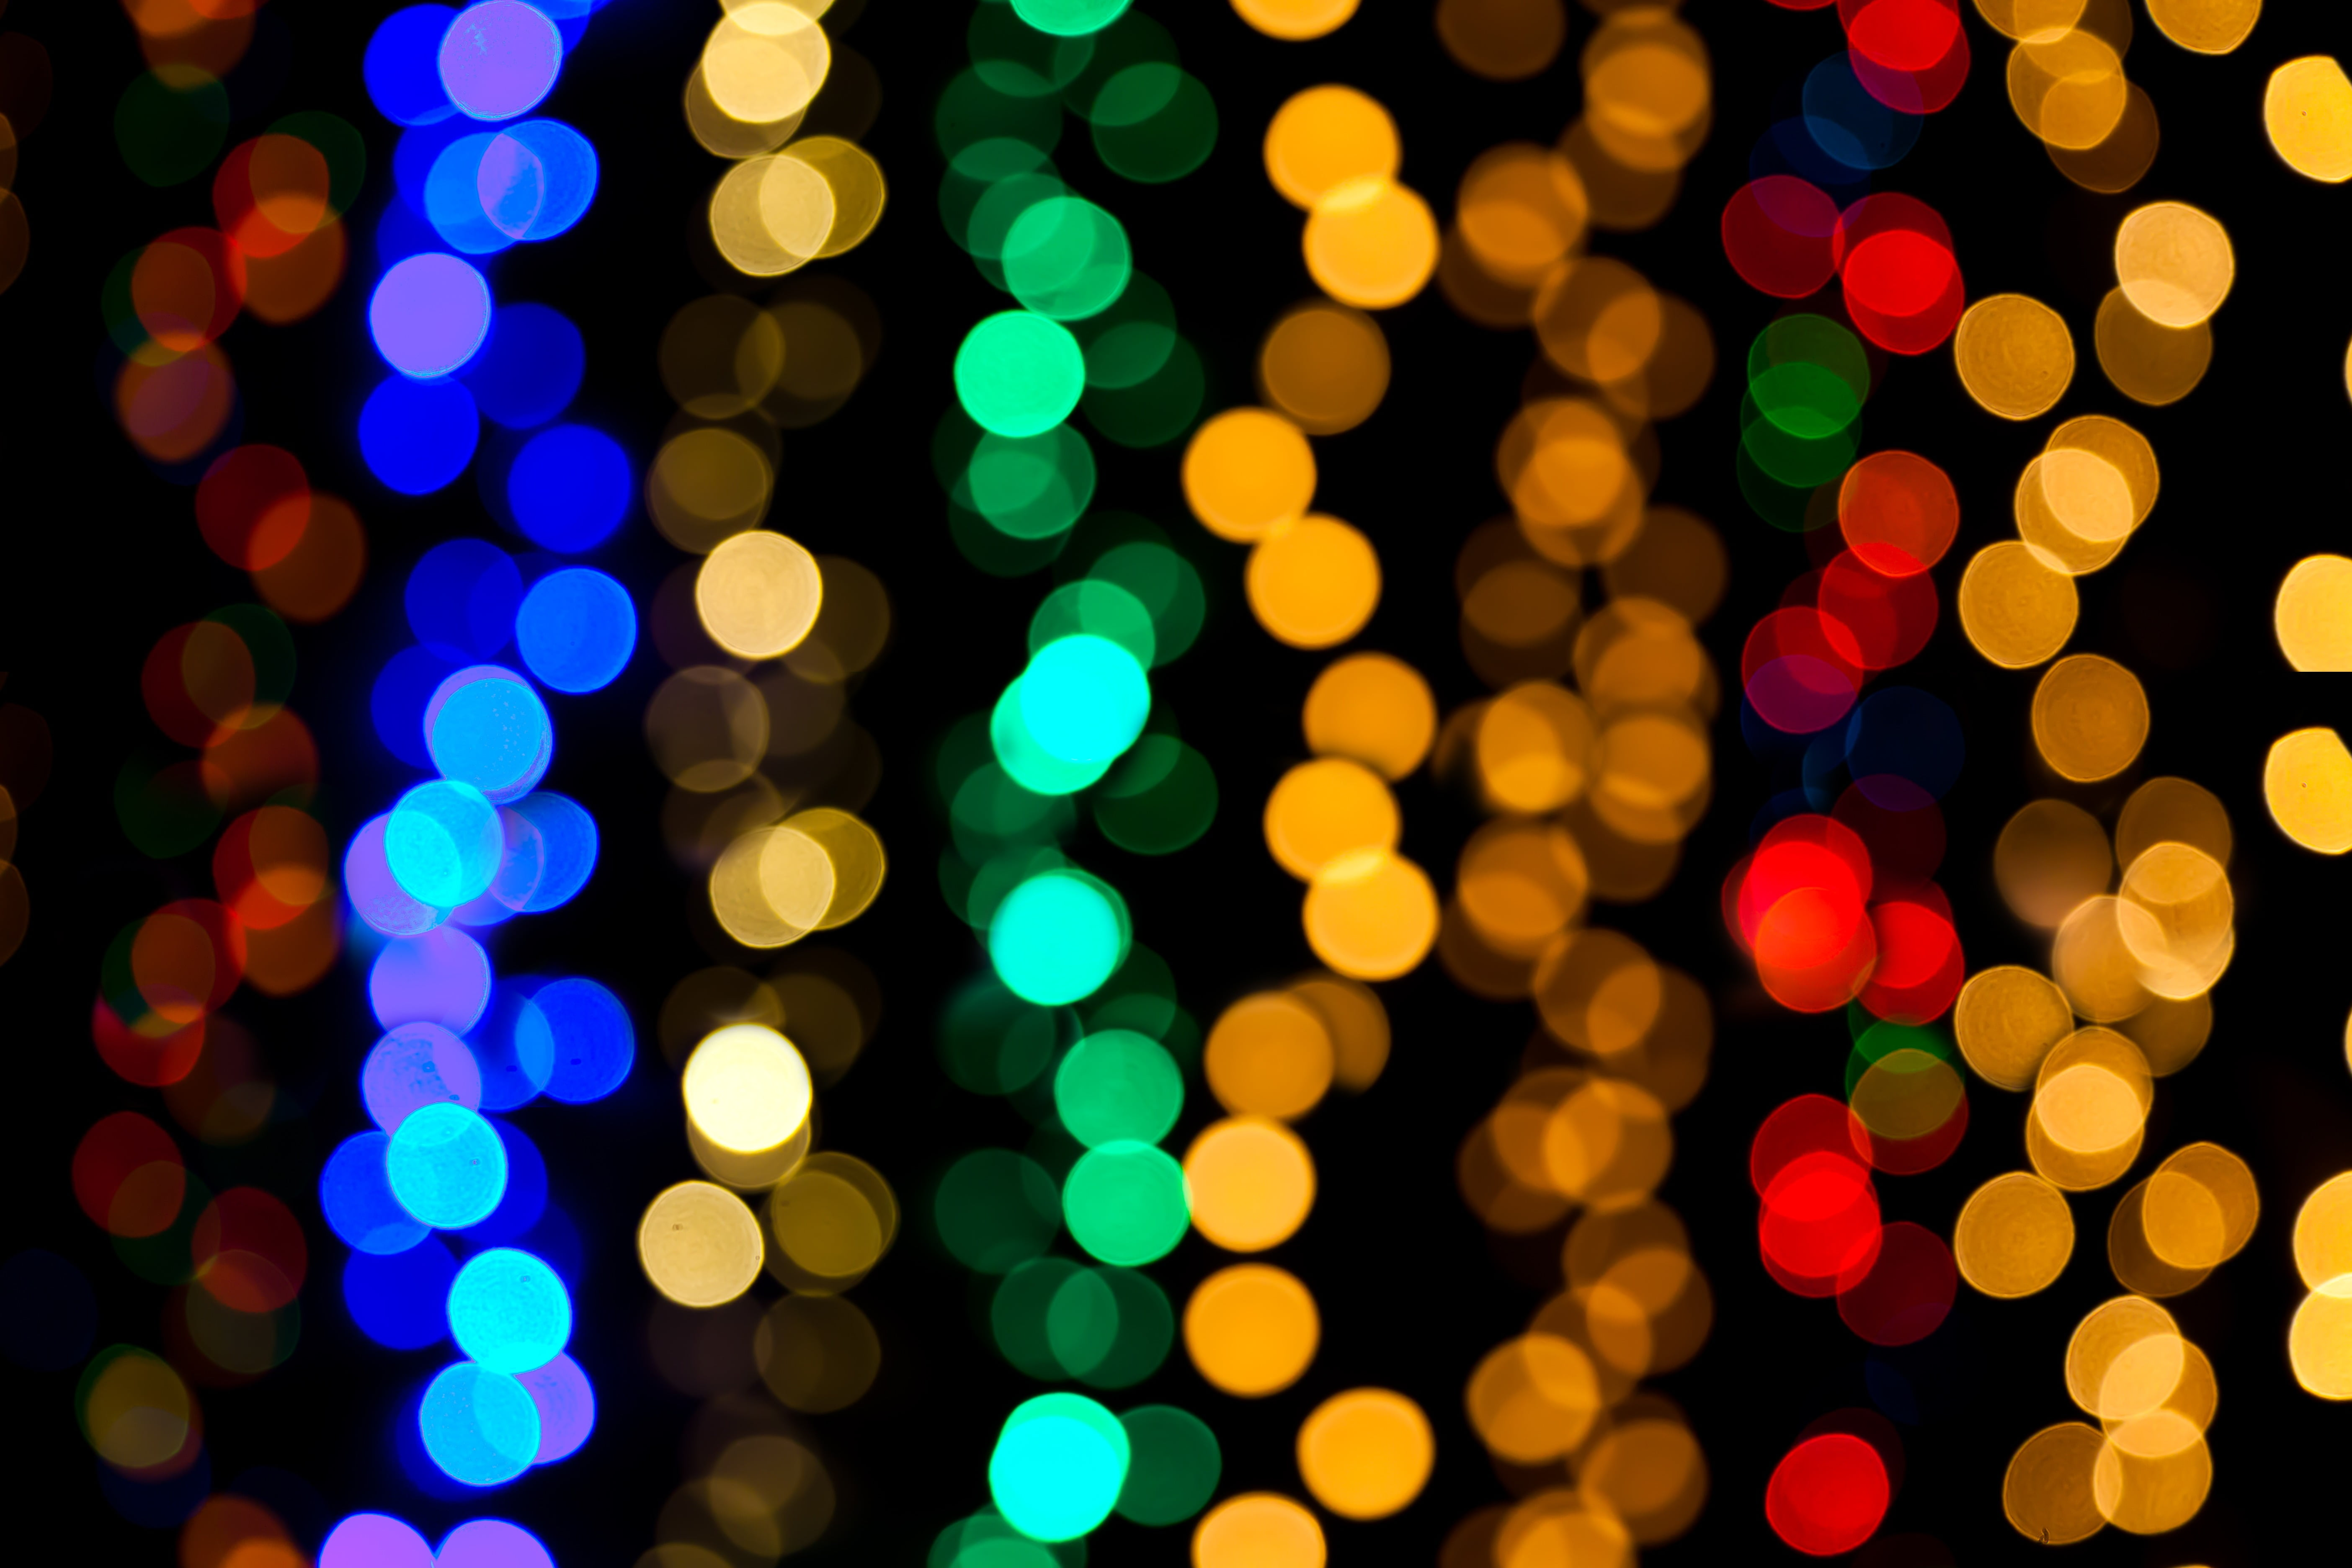 Multicolored bokeh photography HD wallpaper | Wallpaper Flare